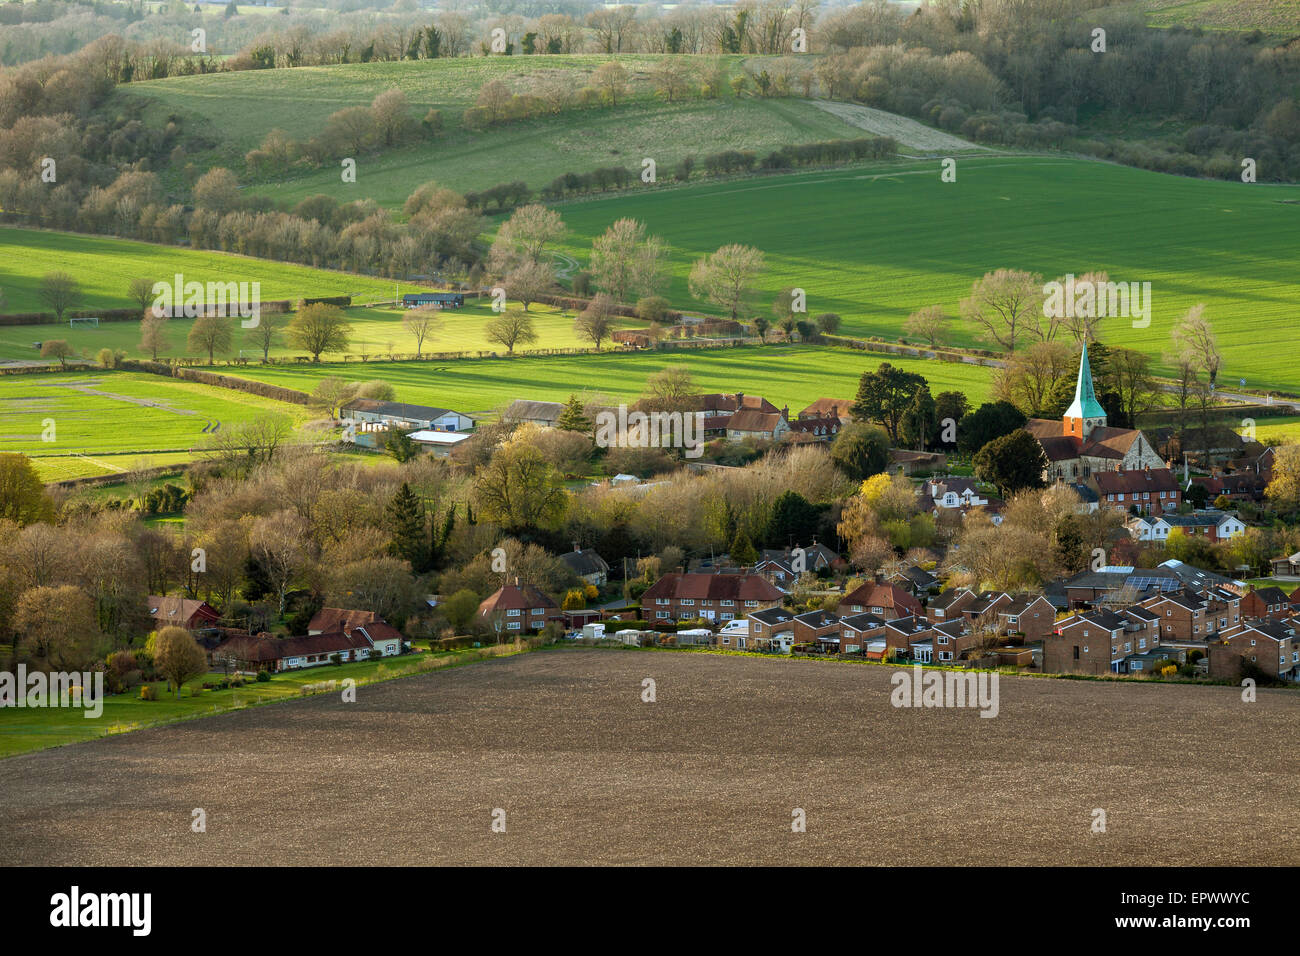 Evening in early spring at South Harting, West Sussex, England. - Stock Image